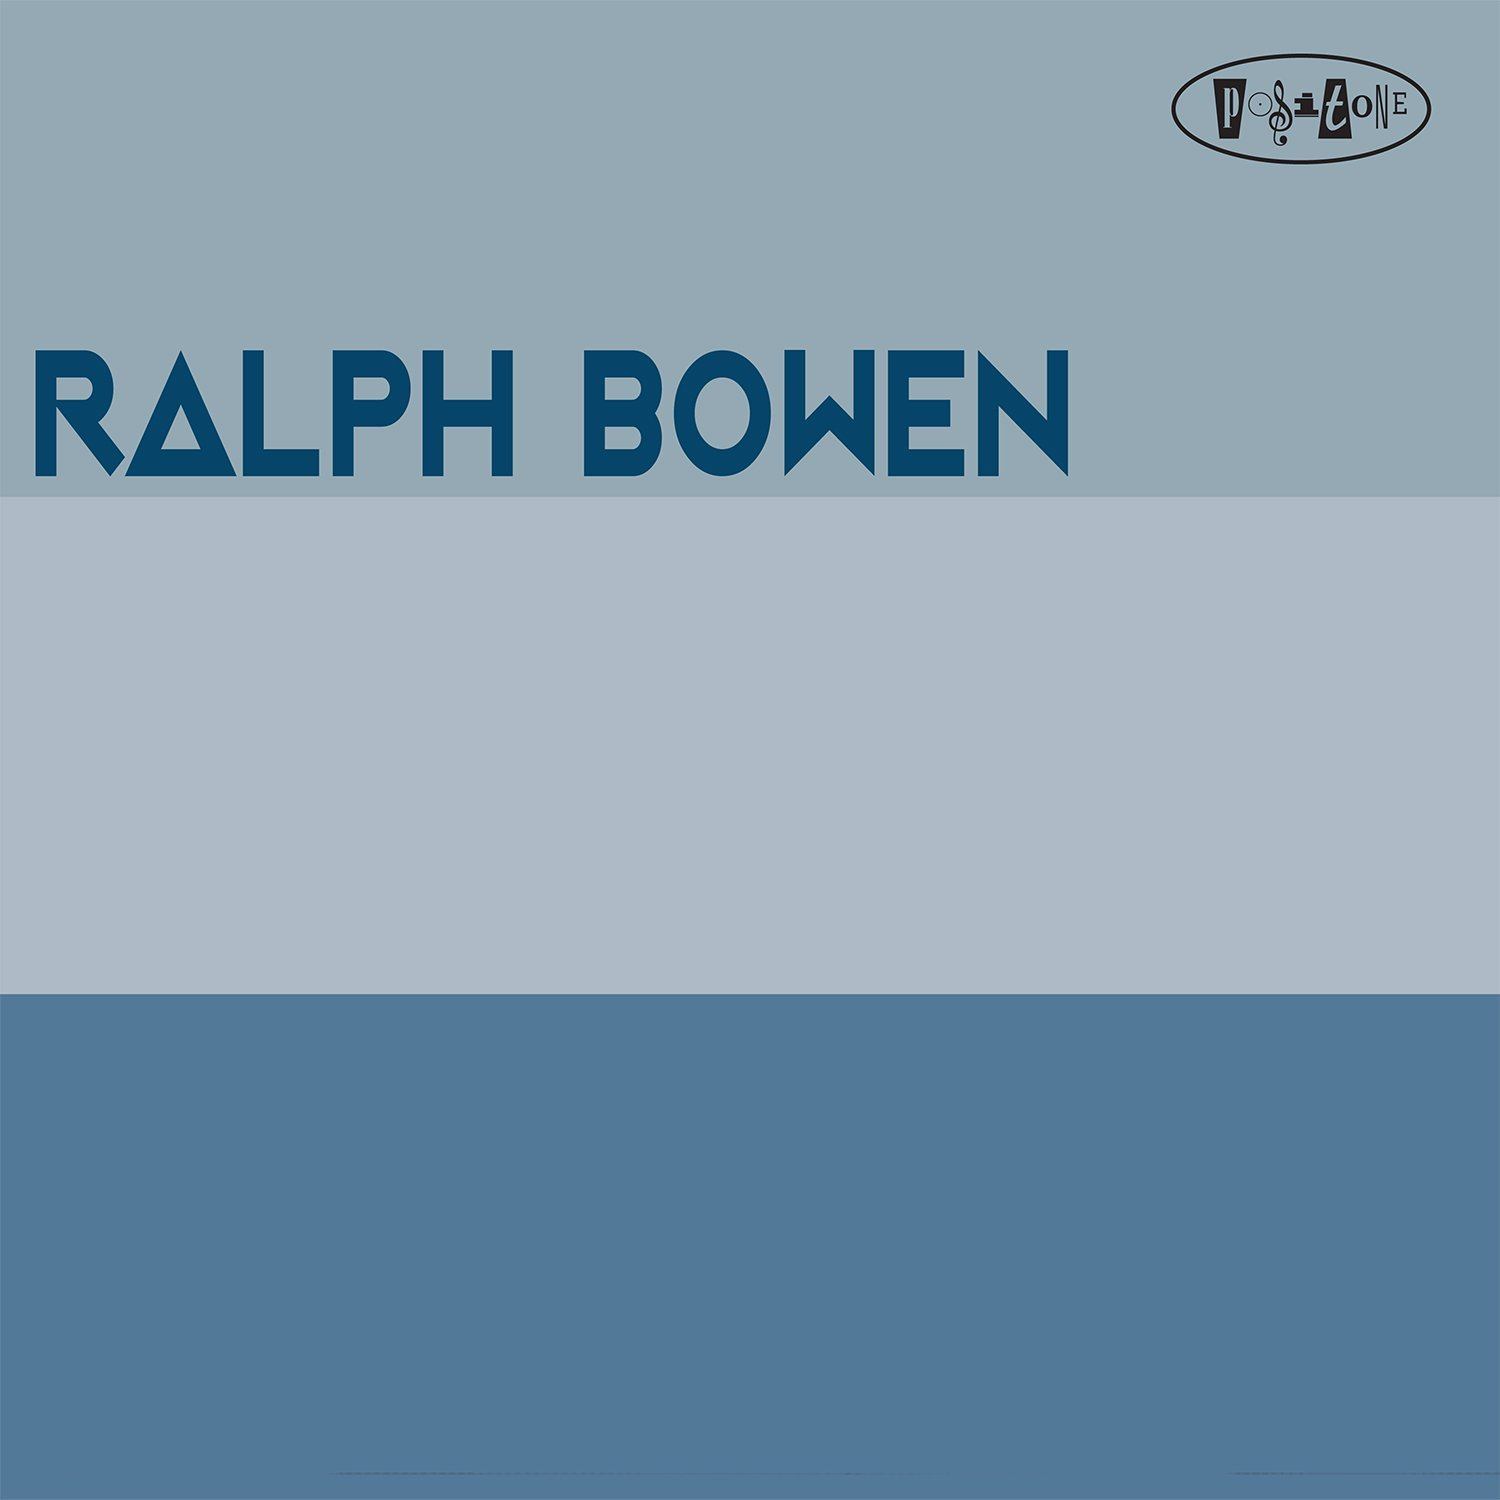 Ralph Bowen, Self-titled